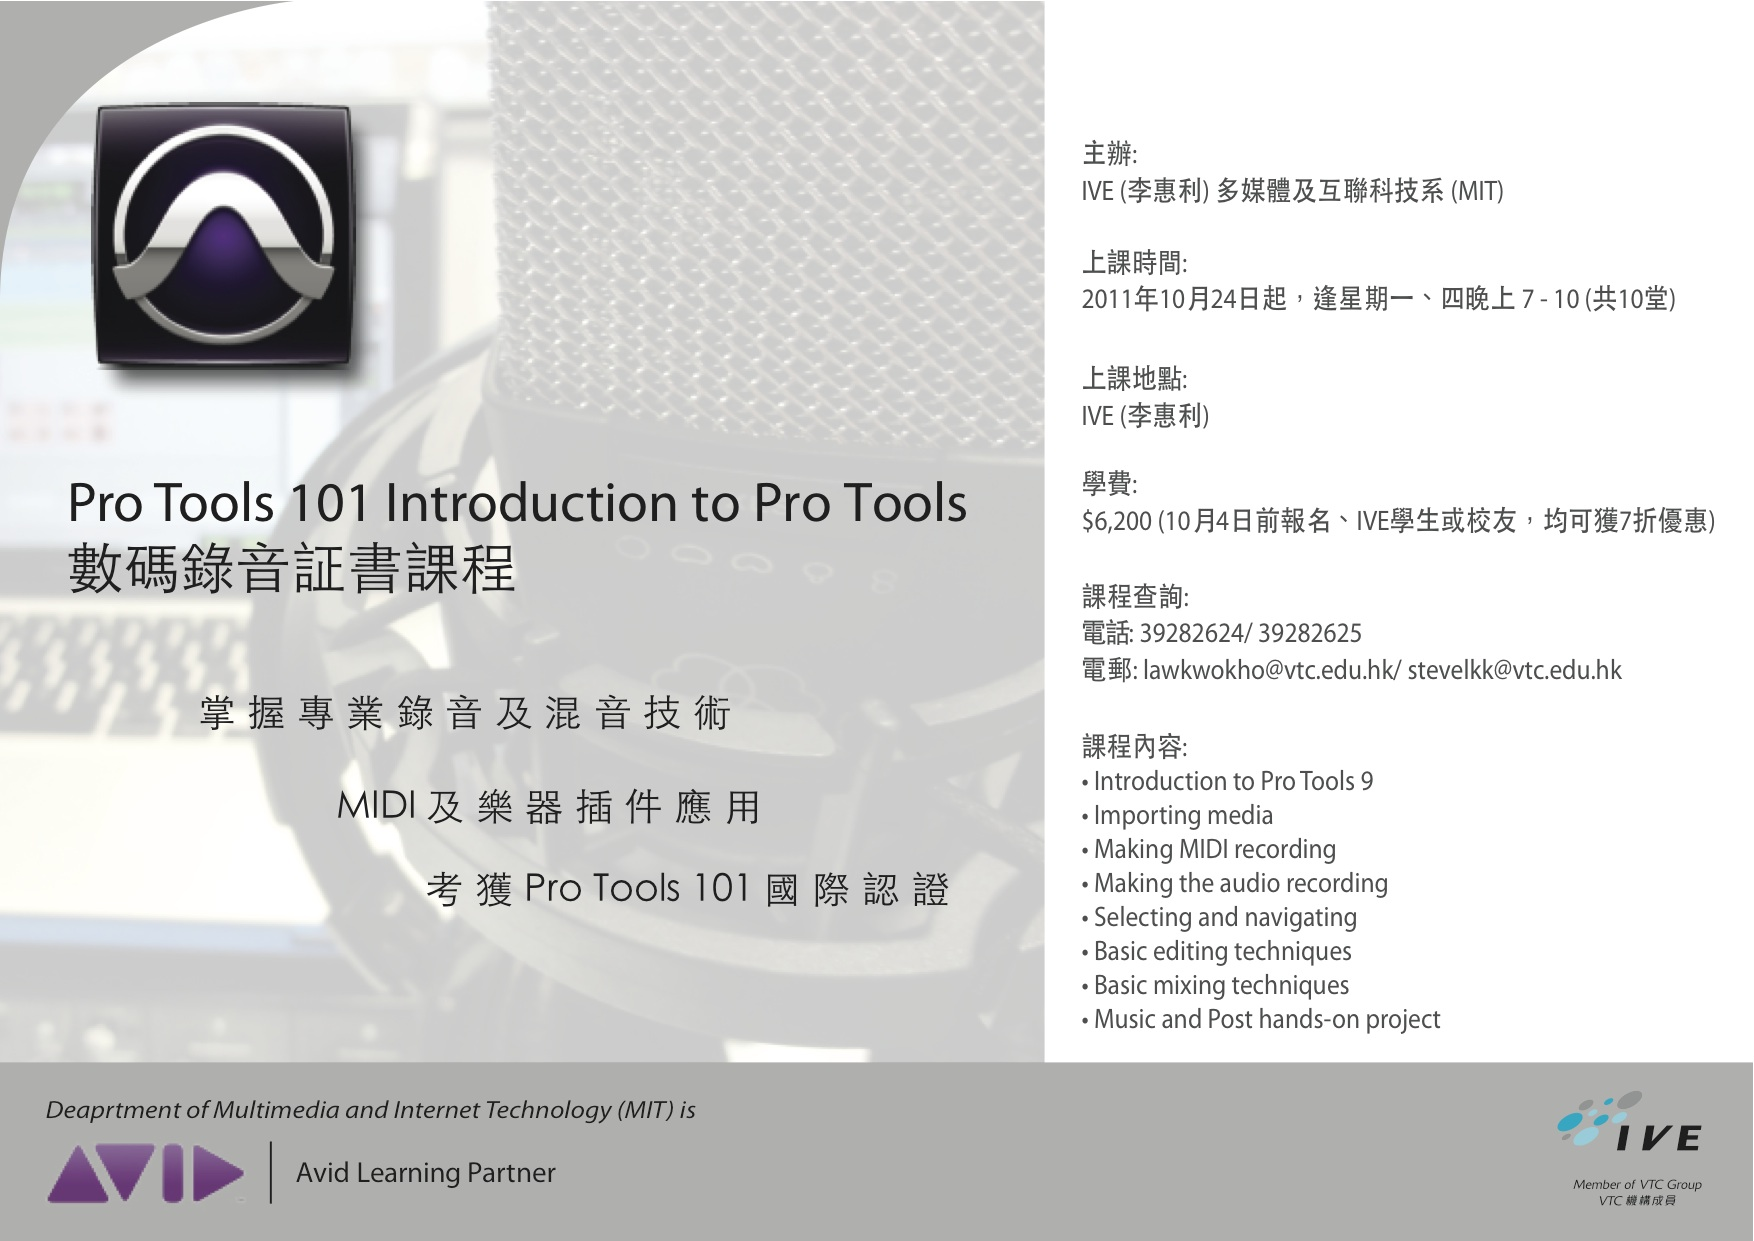 Department of information technology a new pro tools 101 certification course will embark in late october special discount is available for ive students alumni and early registrations xflitez Gallery